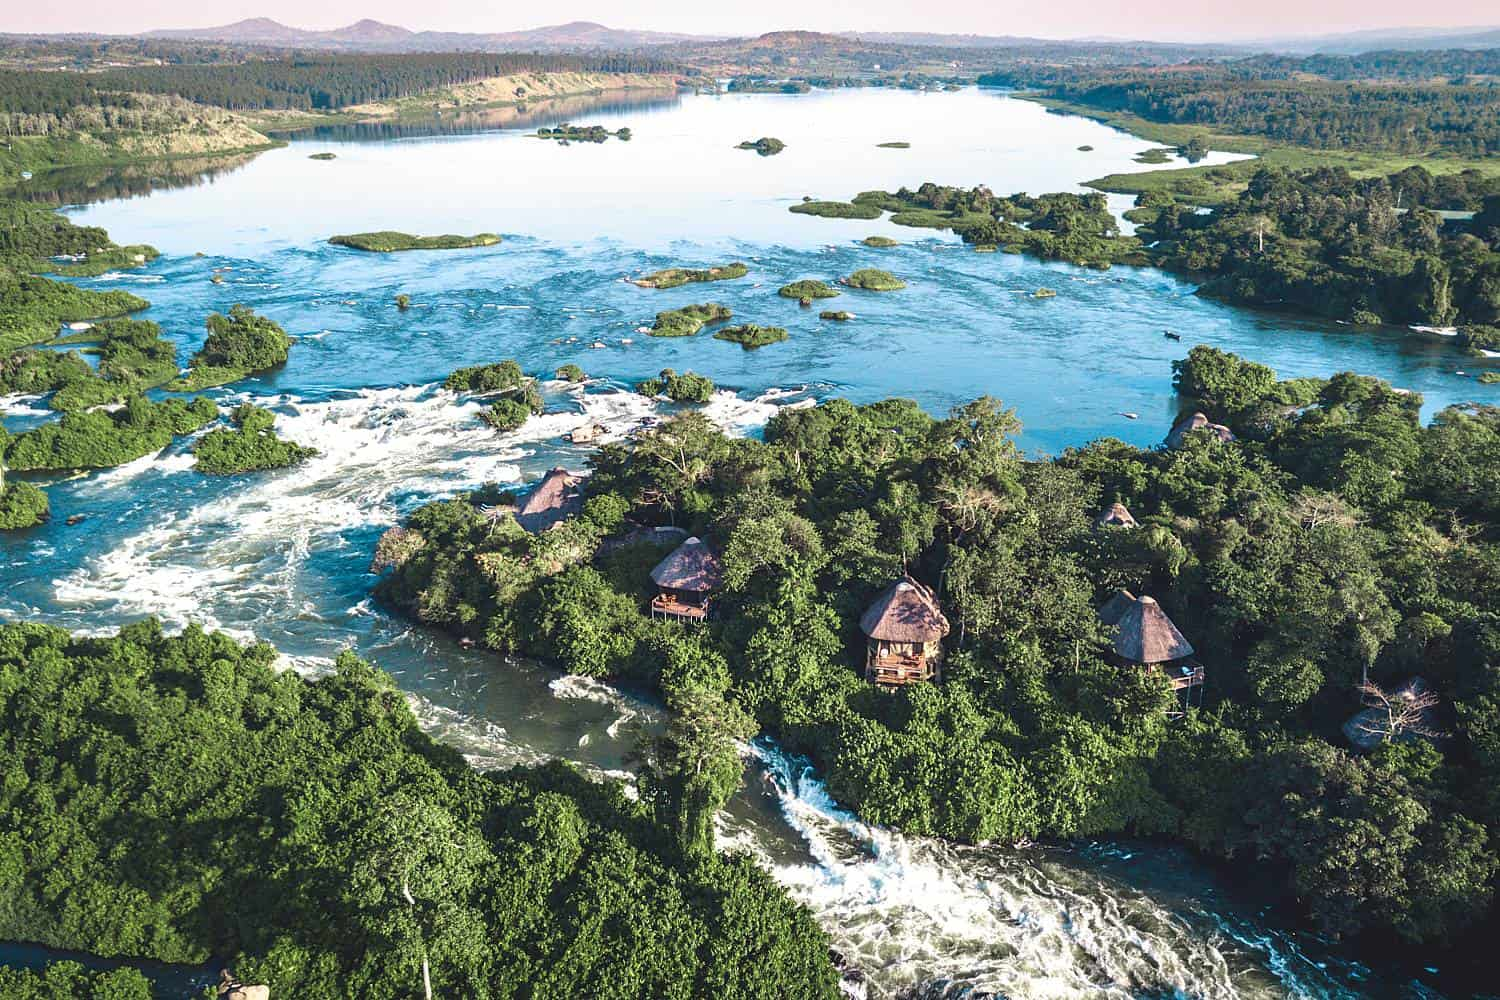 Jinja - Nile River - An Overview